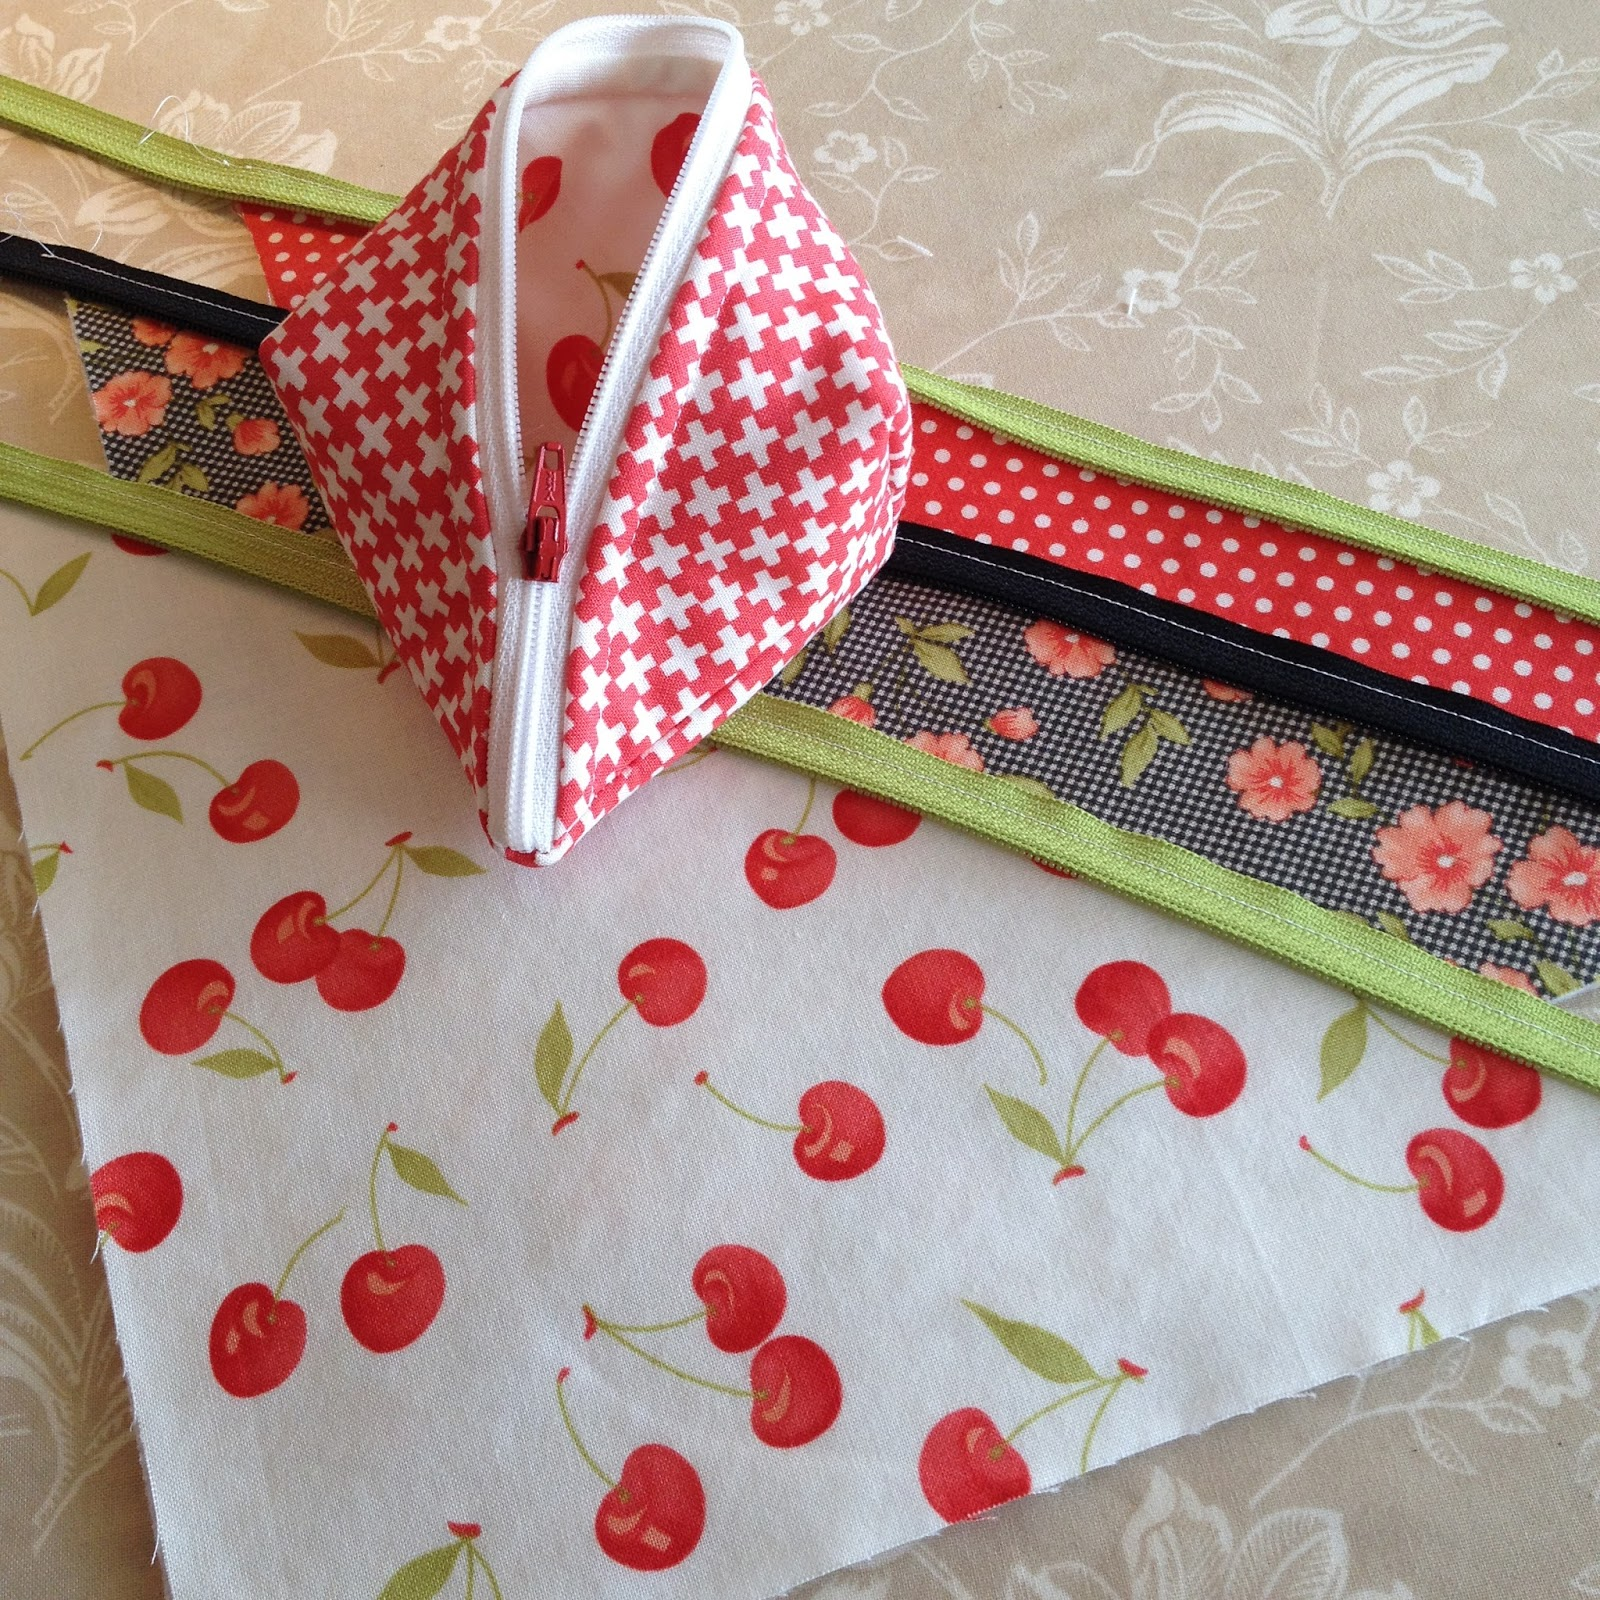 Carried Away Quilting: Sweetpea Pod Kit Giveaway with Stash Addict ... : stash addict quilts - Adamdwight.com